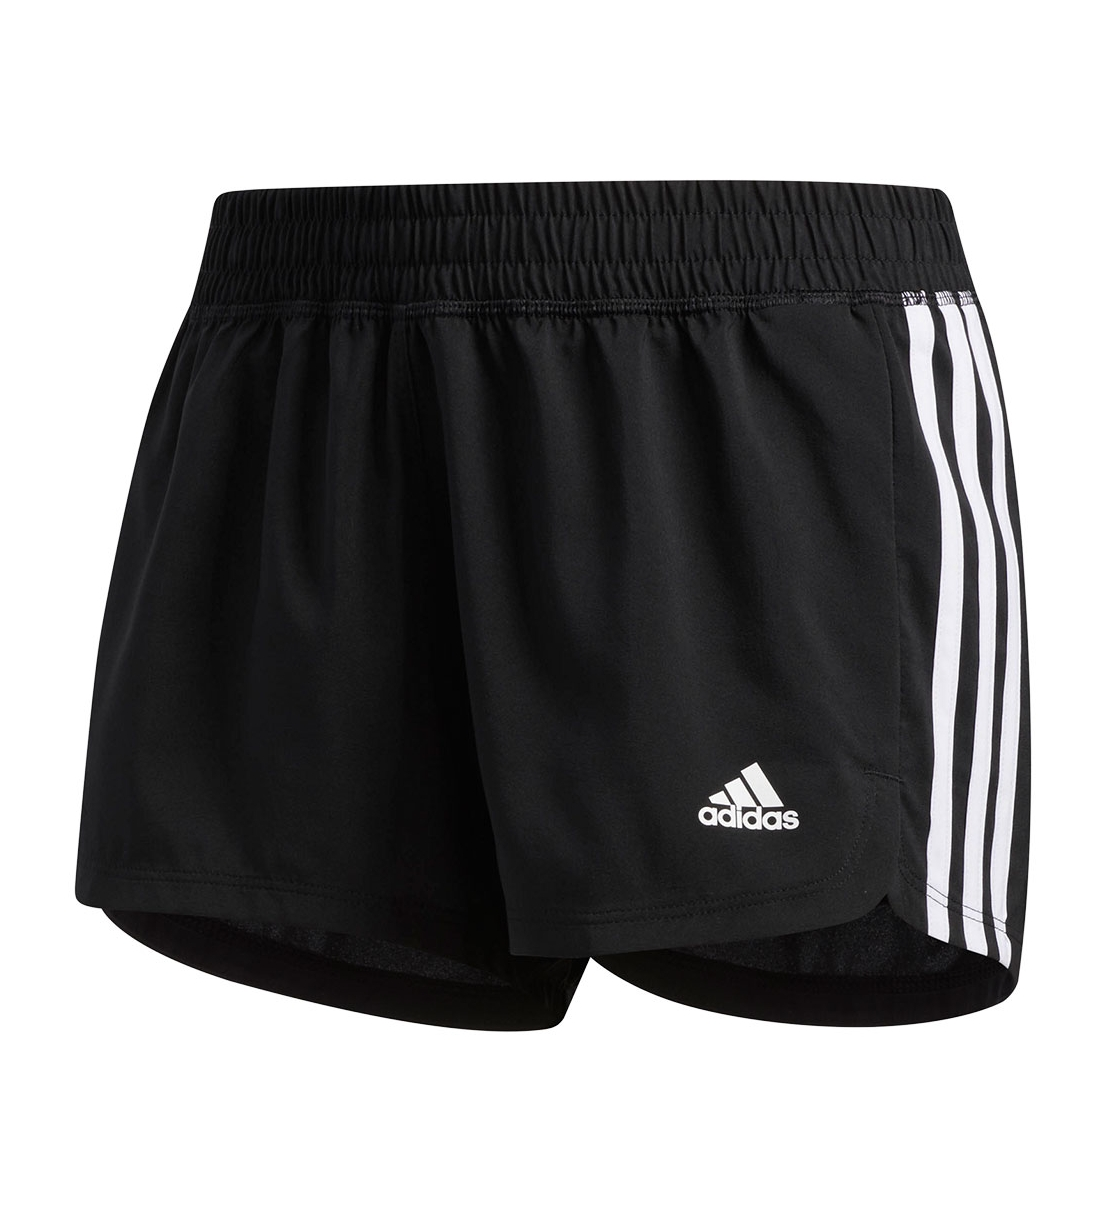 Adidas Fw20 Pacer 3 Stripe Woven Short